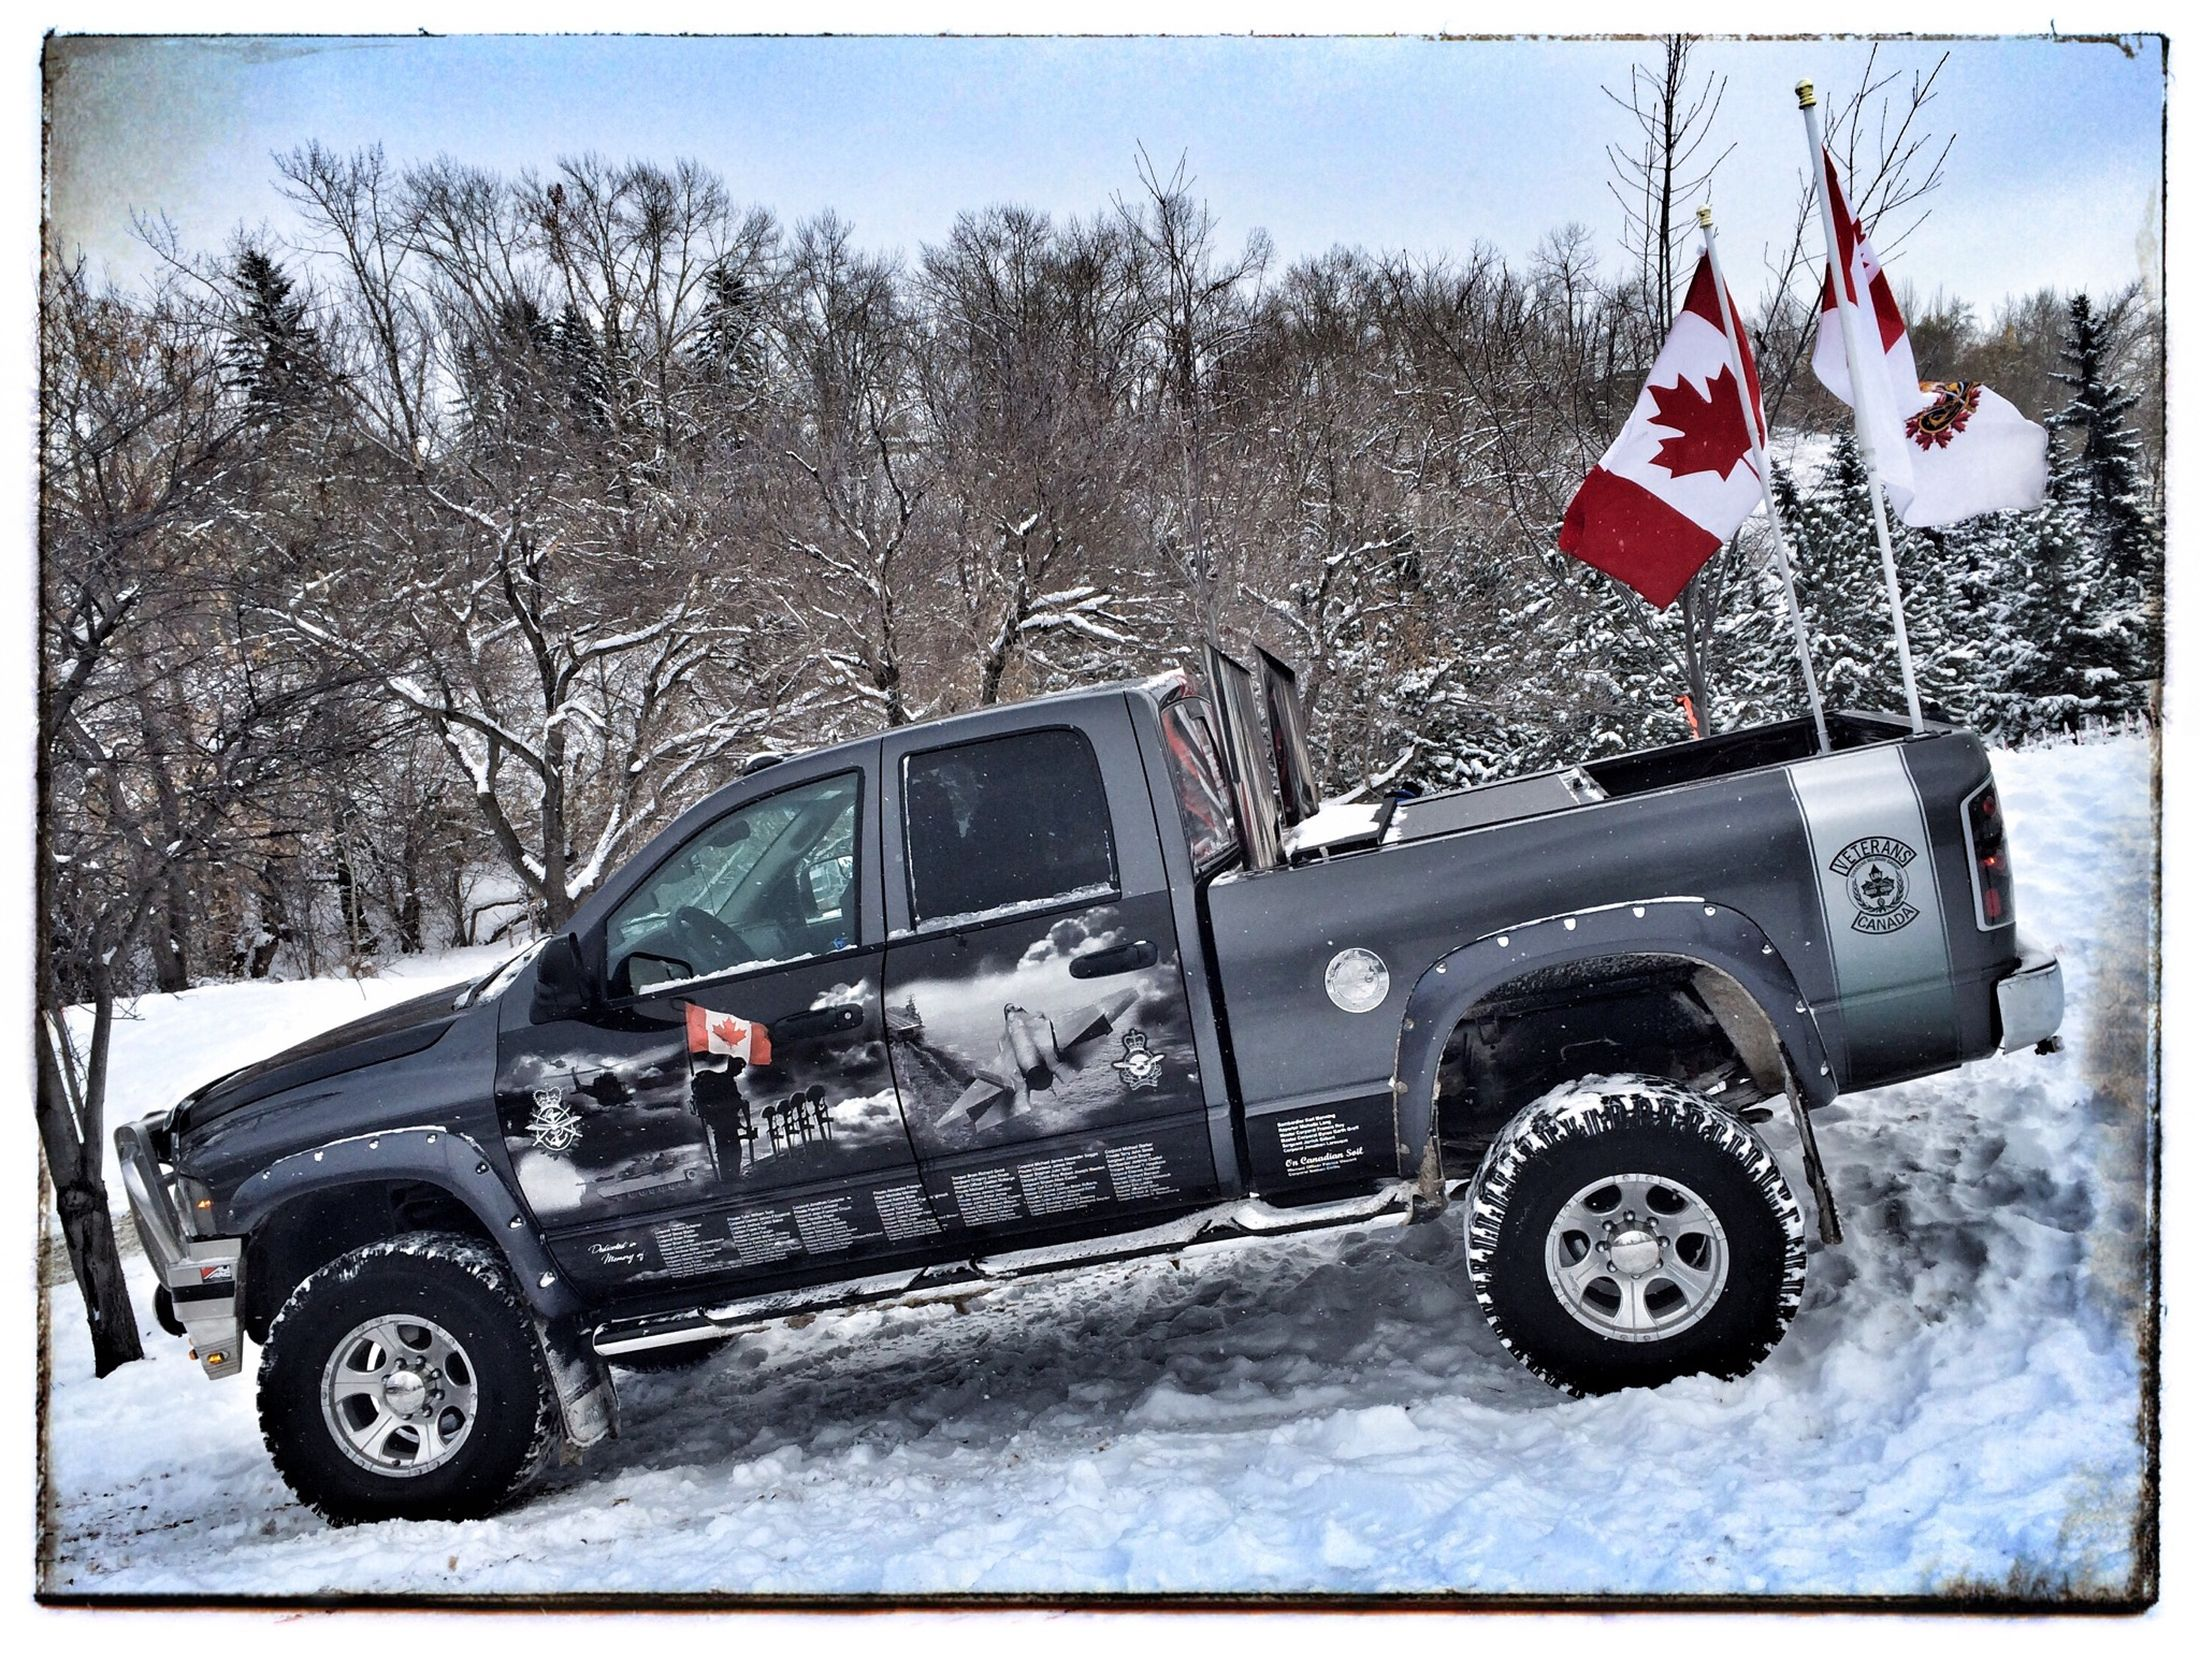 Veterans 4X4 in support of our soldiers. Remembrance Photography Iphone 5 Truck